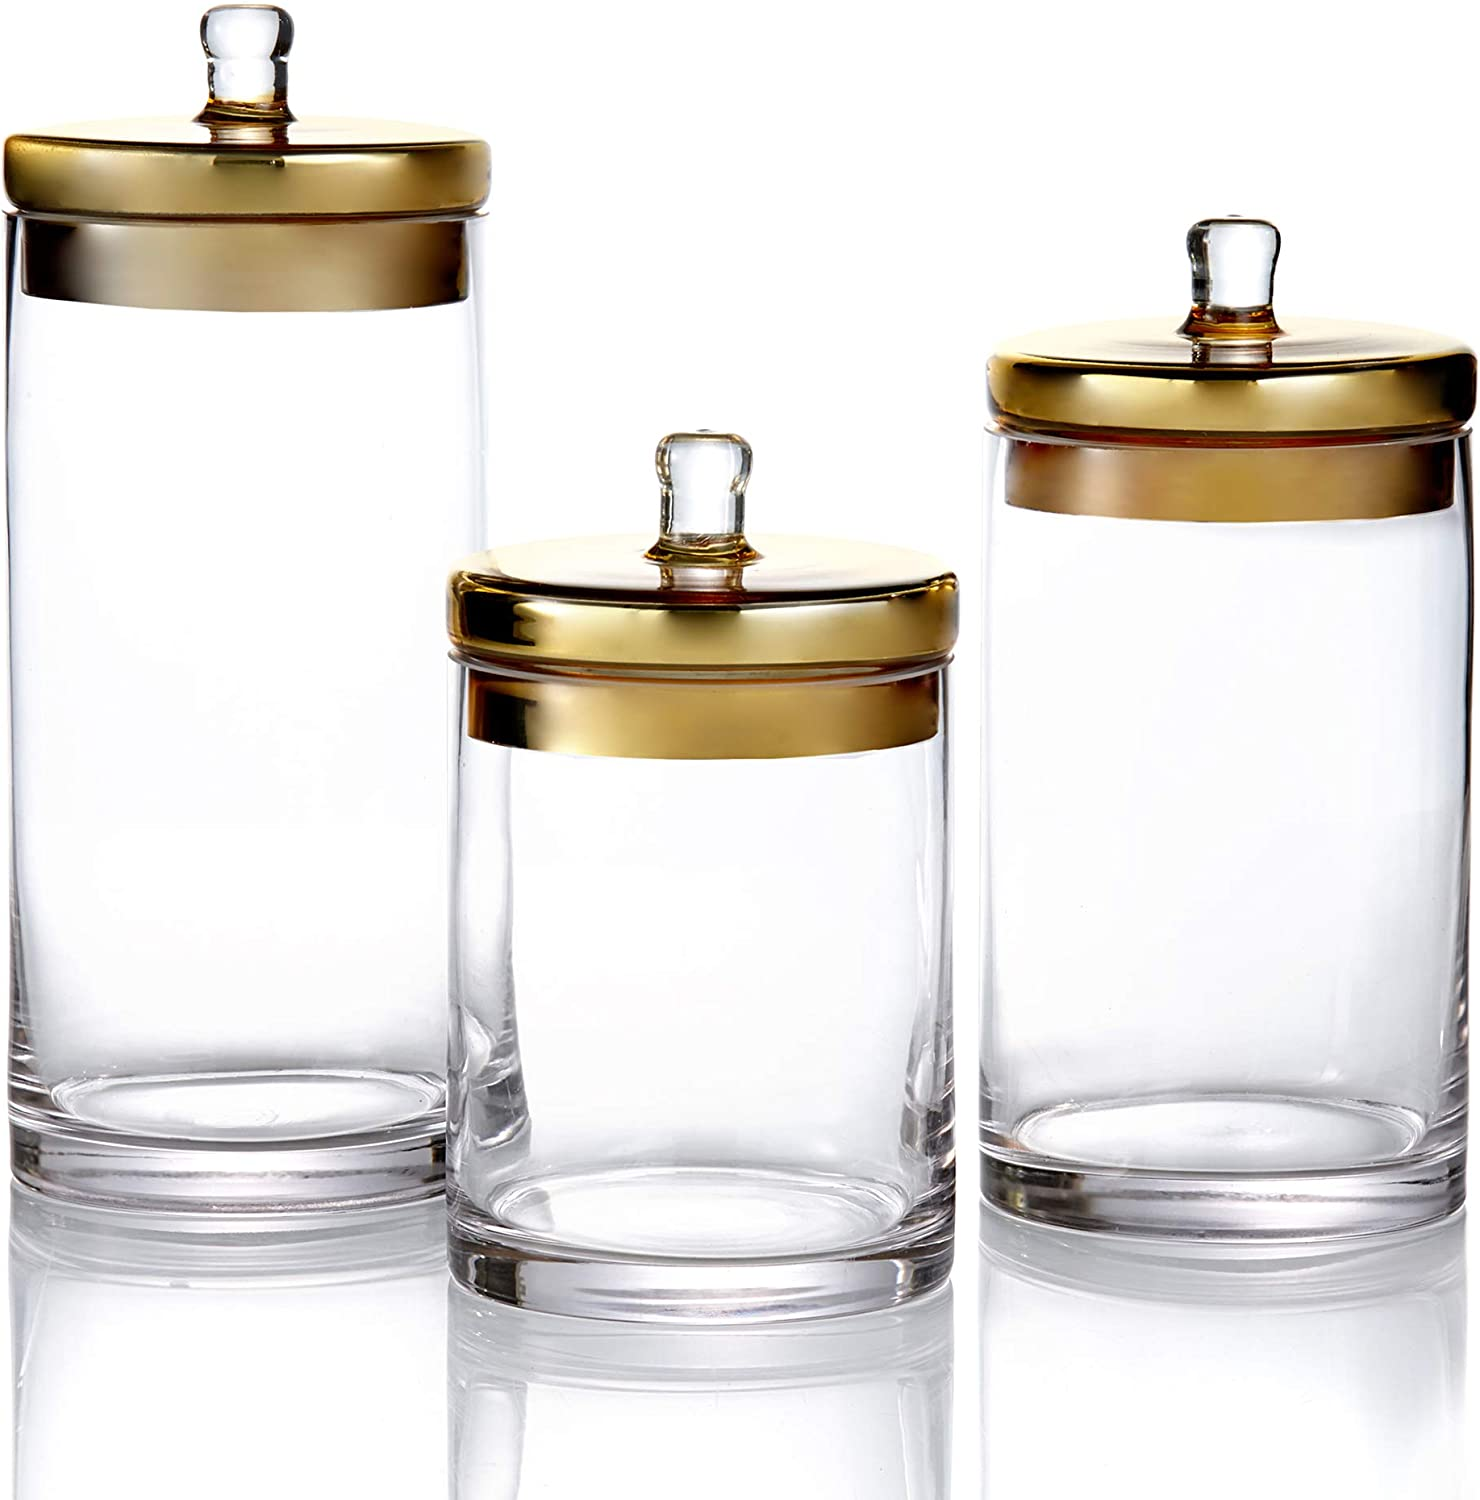 Fifth Avenue 203238-GB-GD Canister Set 3-Piece Glass Jars With gold Lids for Cookies, Candy, Coffee, Flour, Sugar, Rice, Pasta, Cereal & More, 12, 10, 8.46 H, Clear